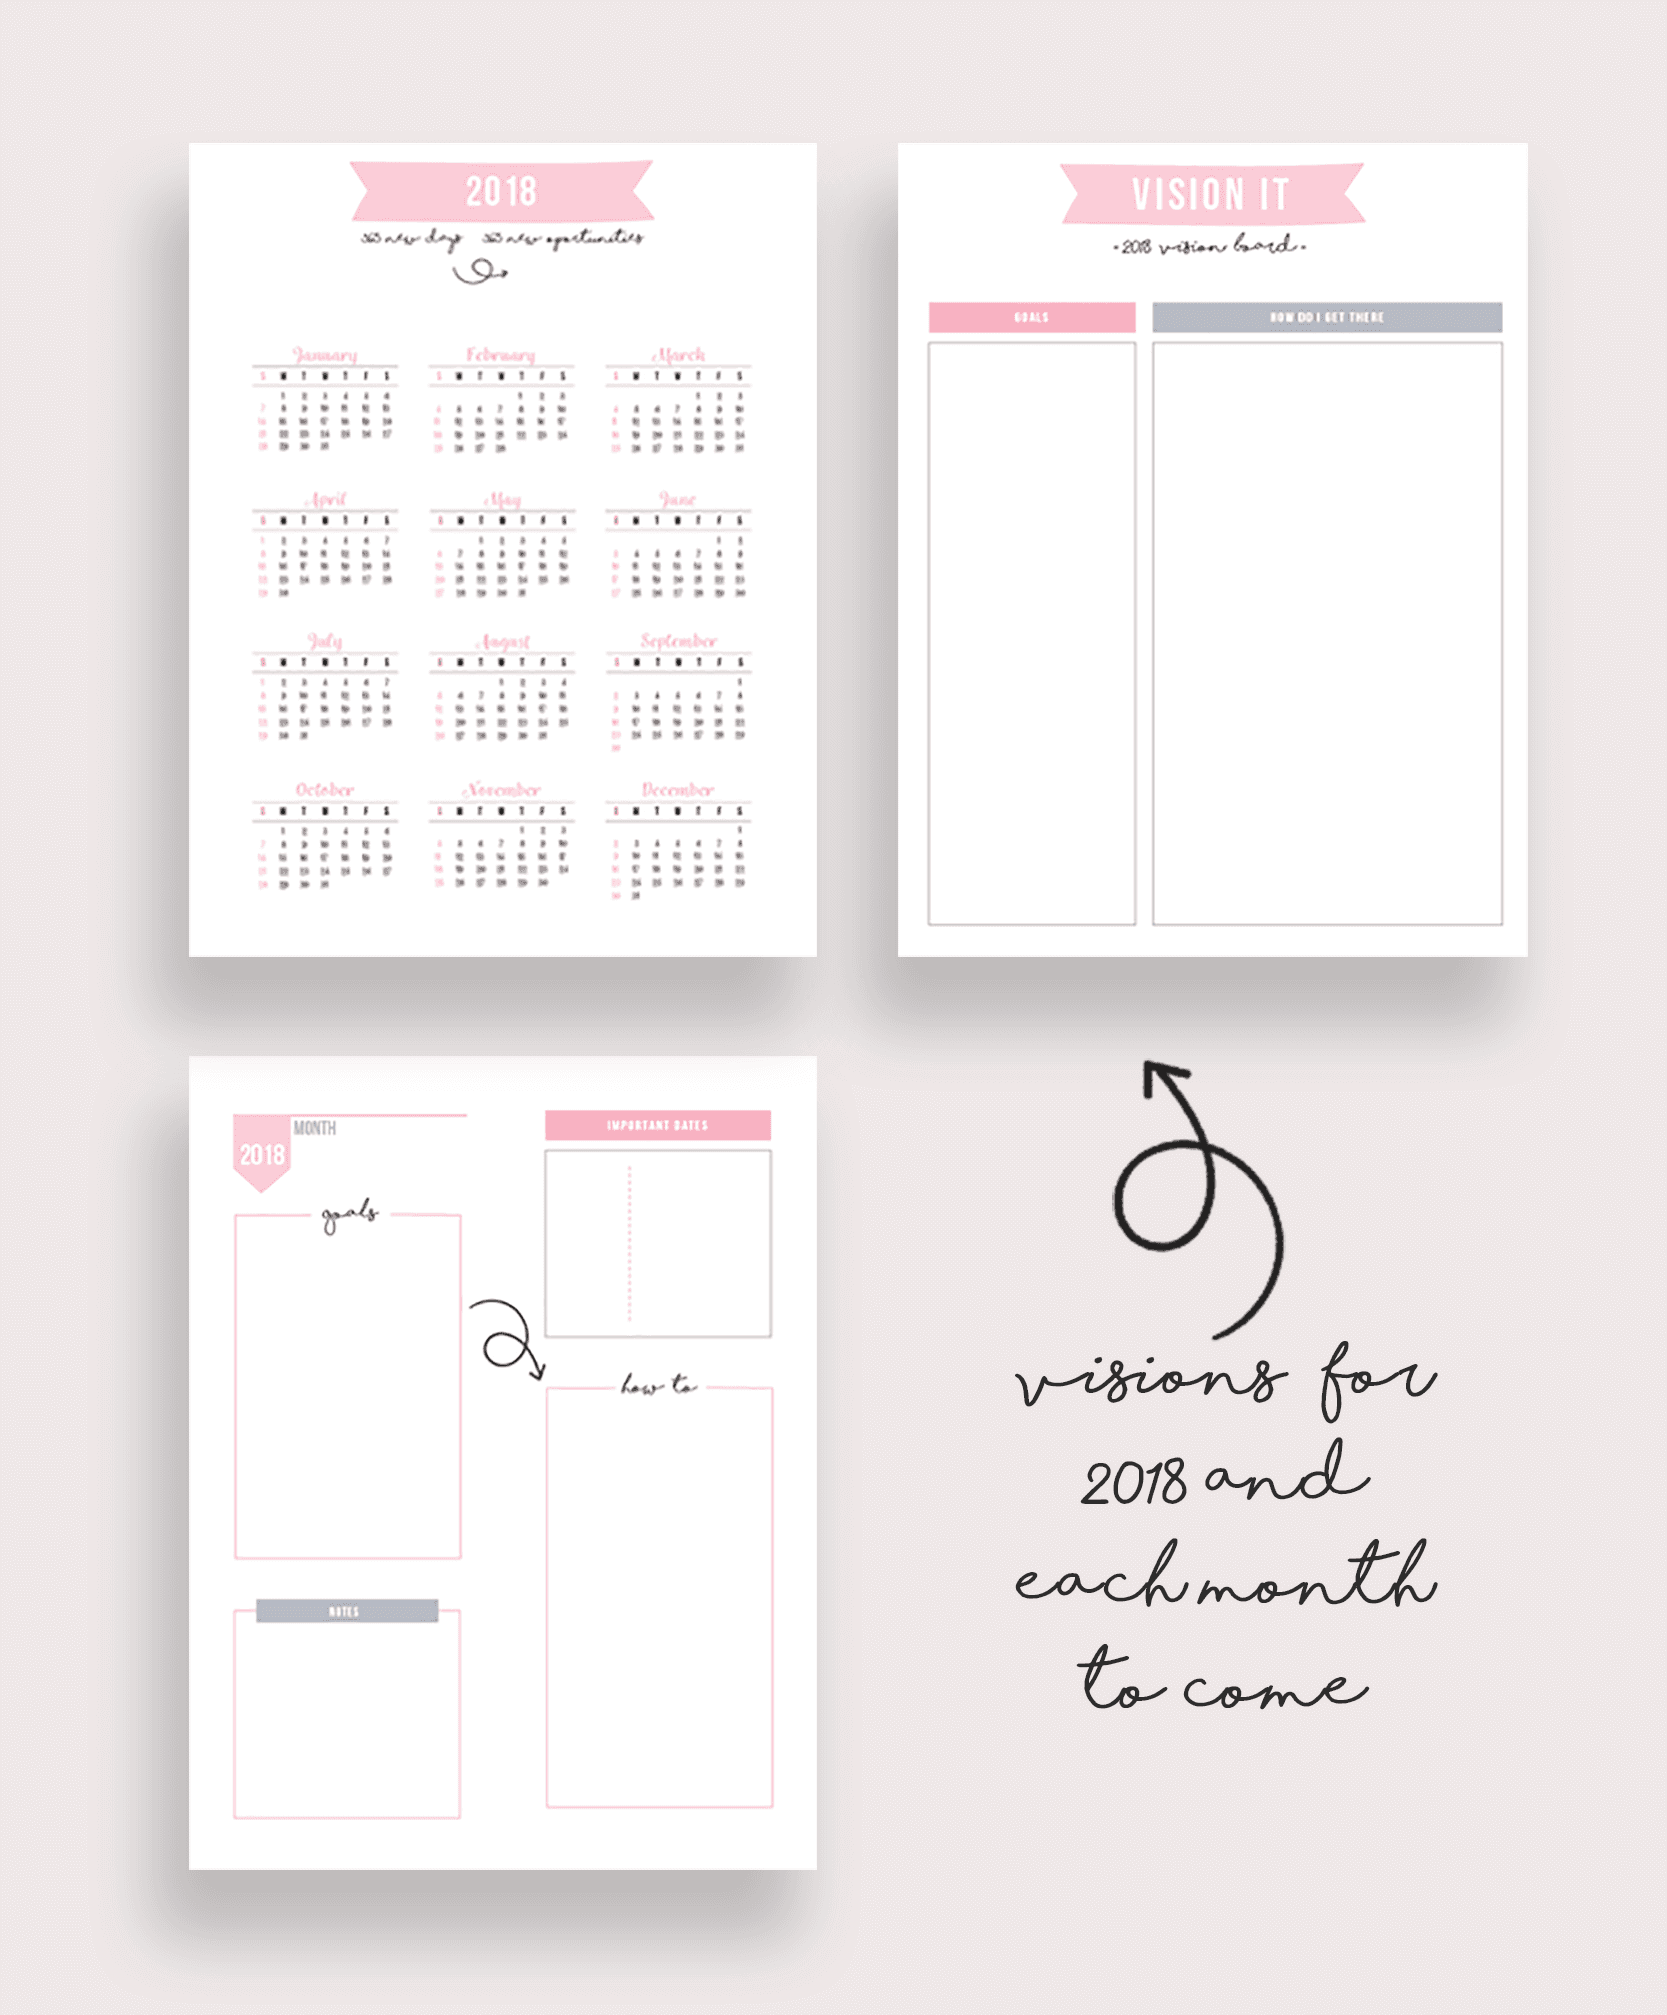 photo regarding Fitness Planner Printable titled 2018 Health and fitness Planner Printable Package - Your Planner In direction of